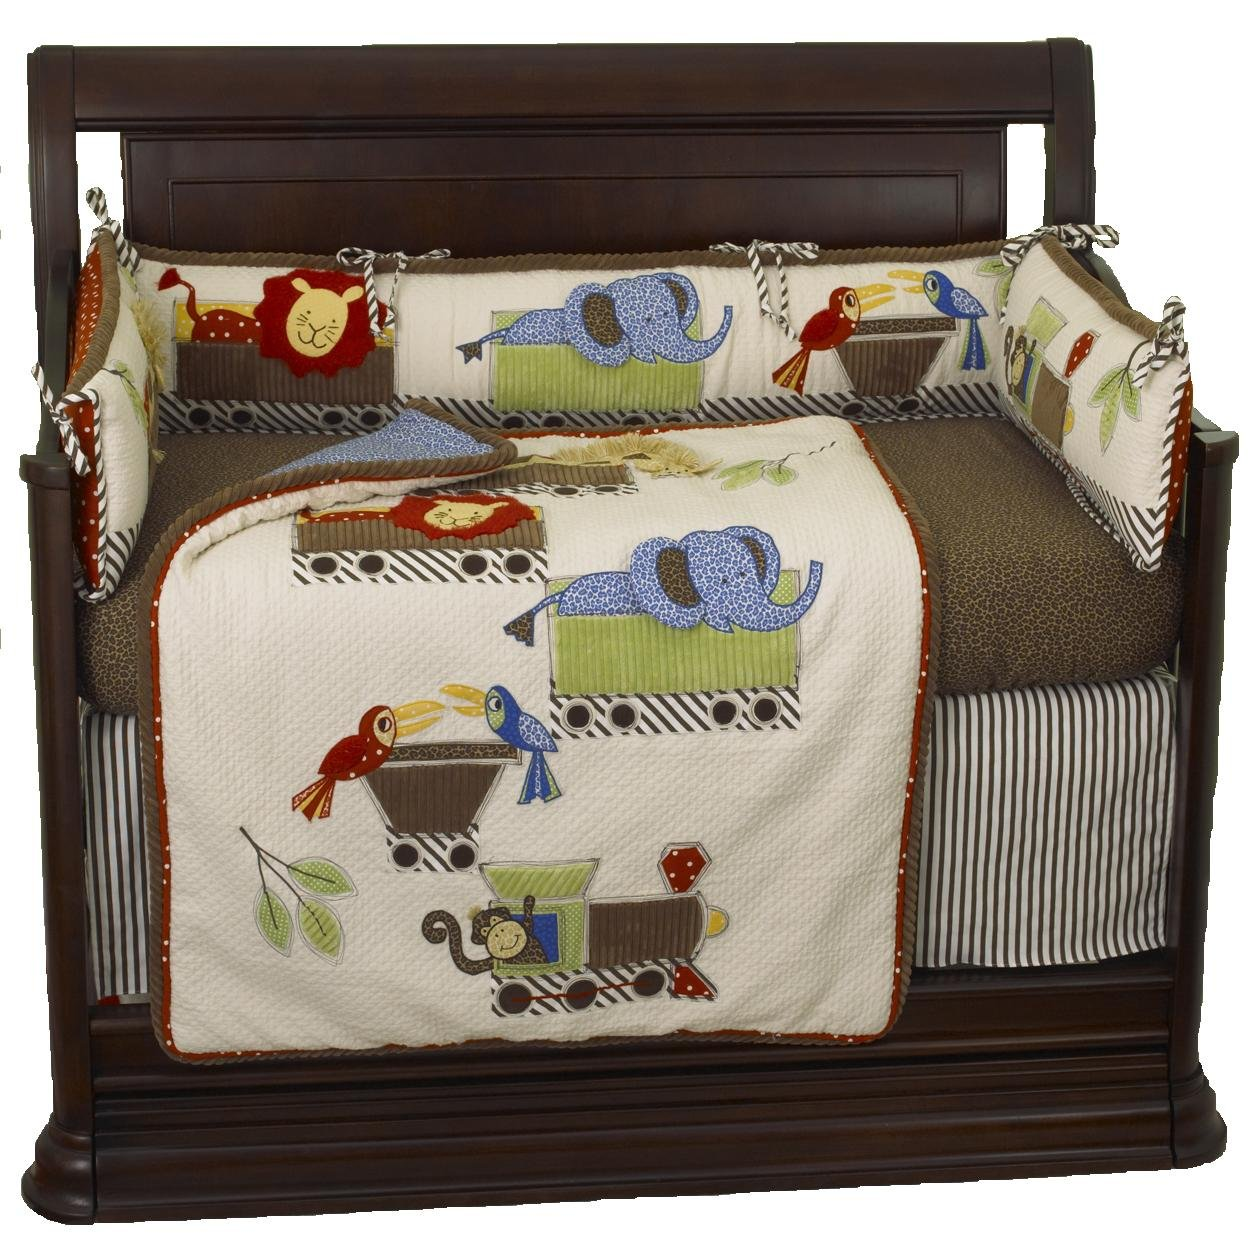 Cotton Tale Animal Tracks Crib Bedding Baby Bedding And Accessories